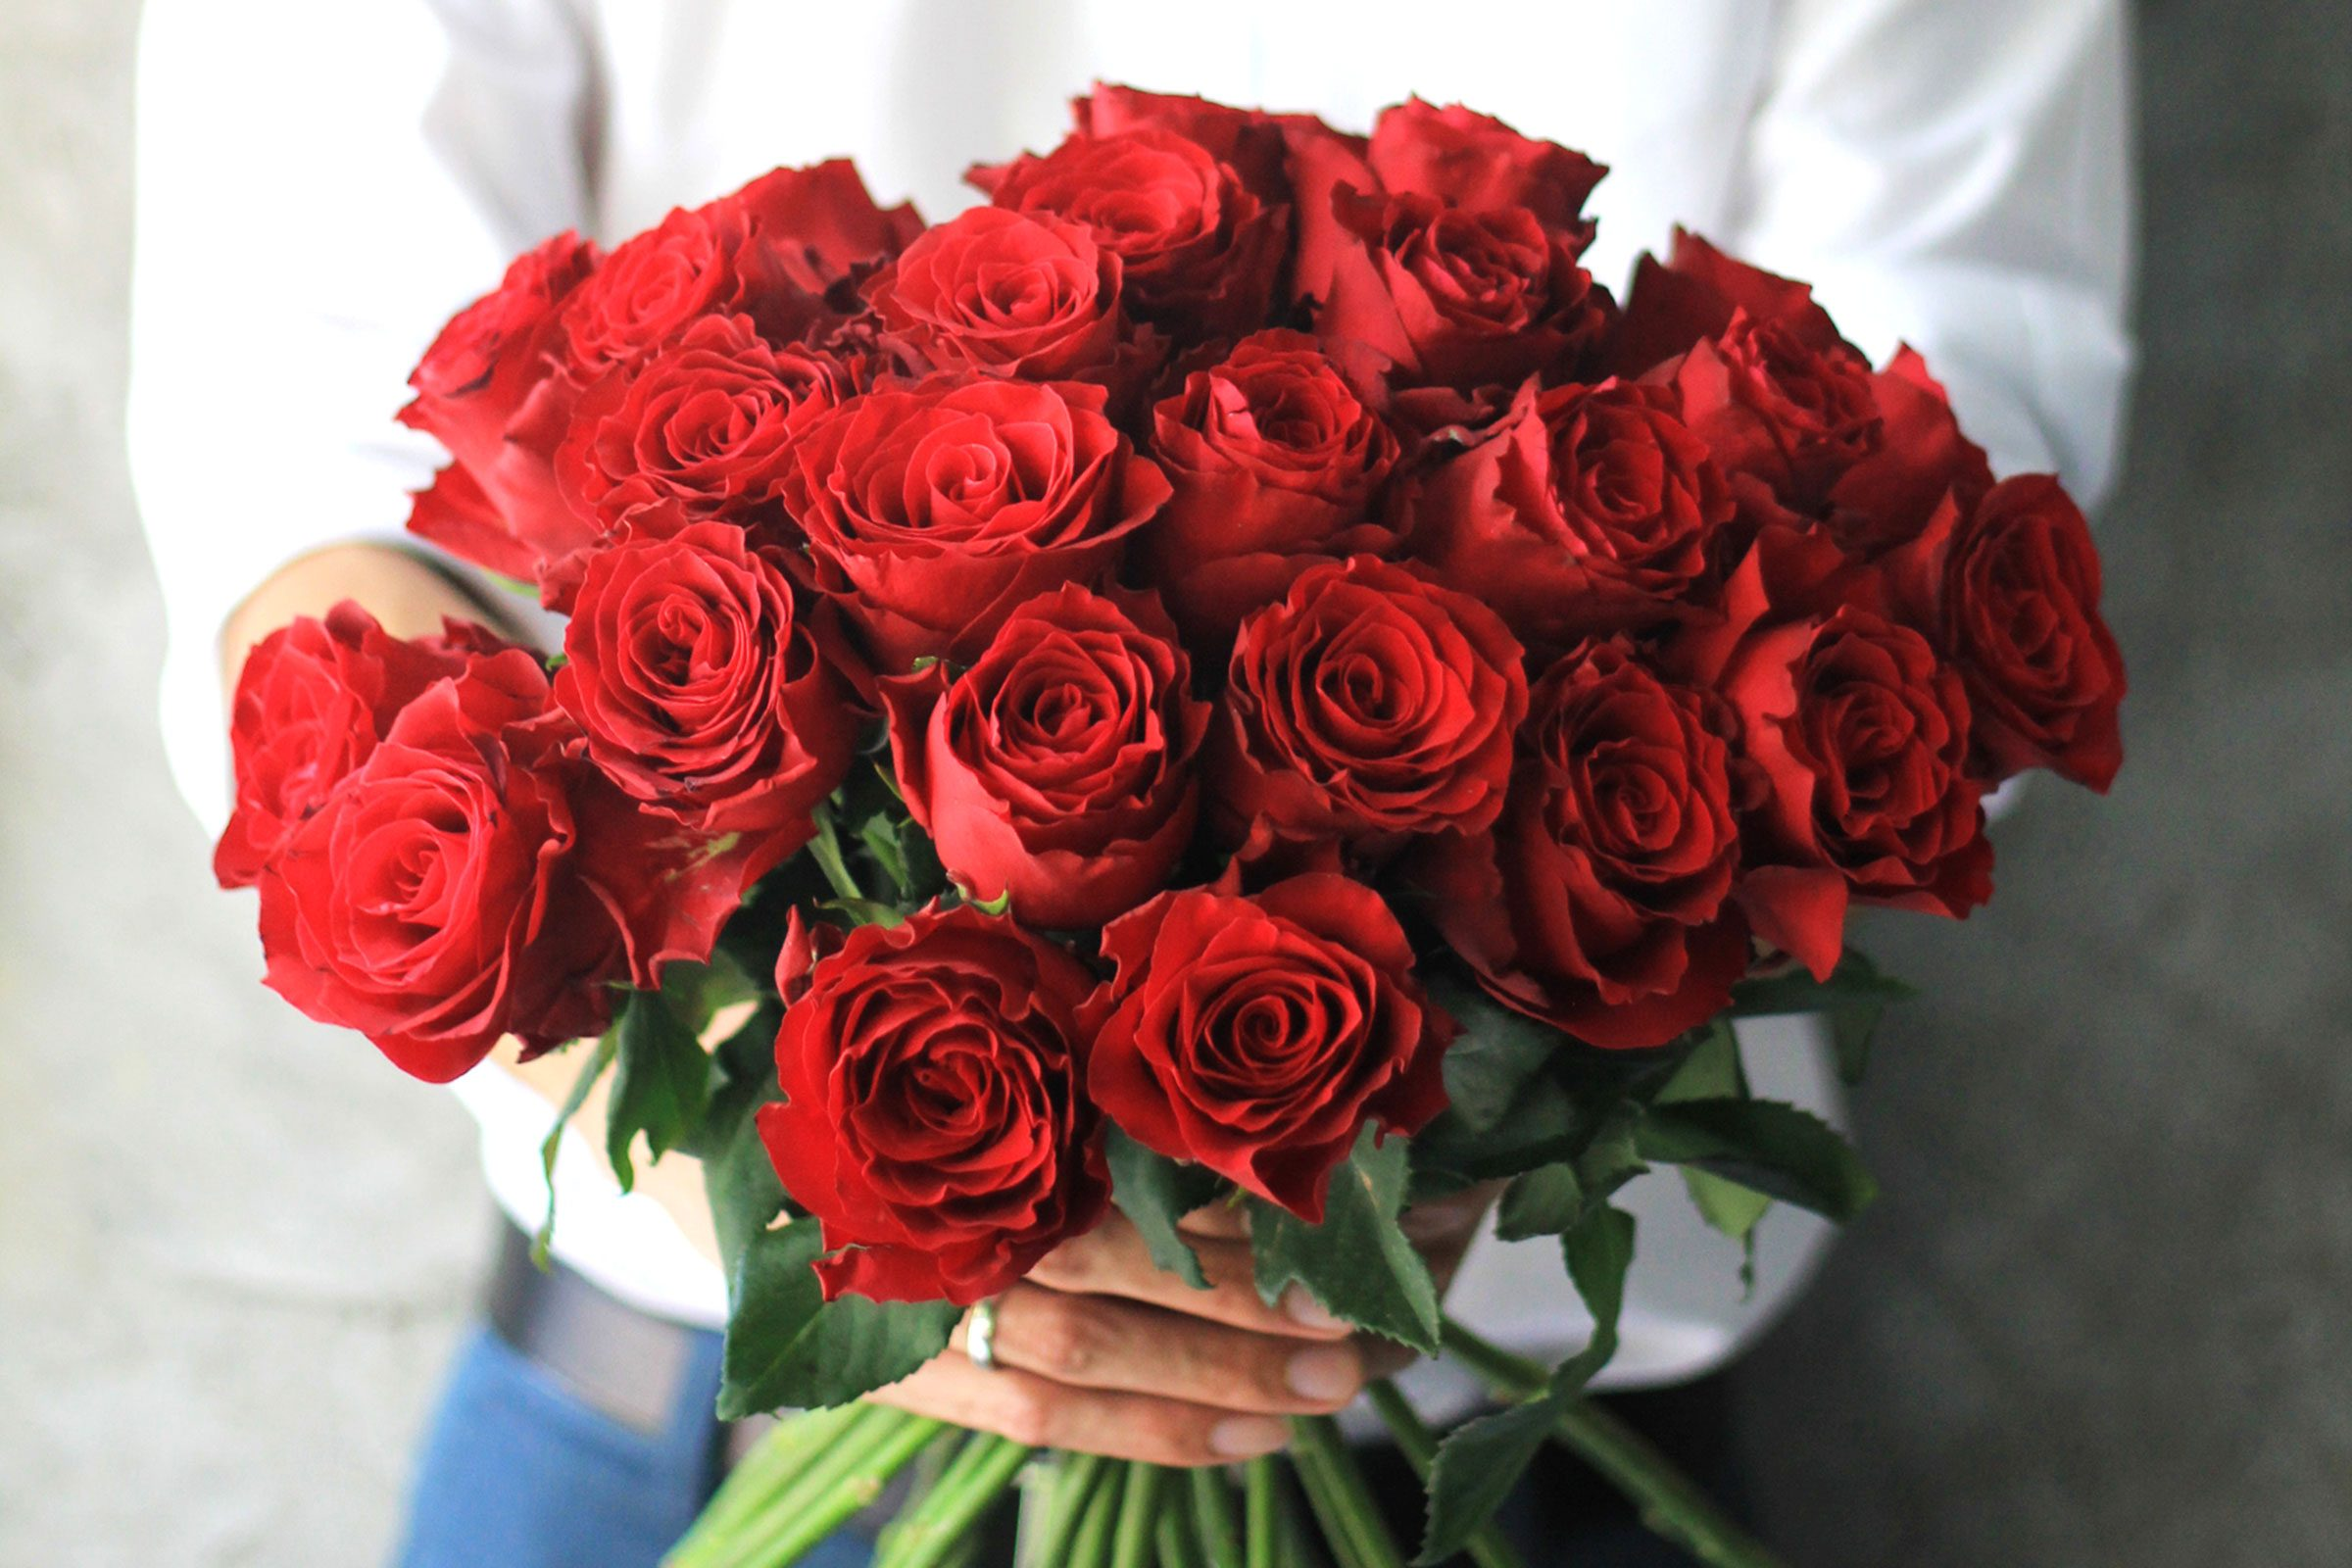 Why Are Roses So Popular For Valentine's Day?  Reader's Digest